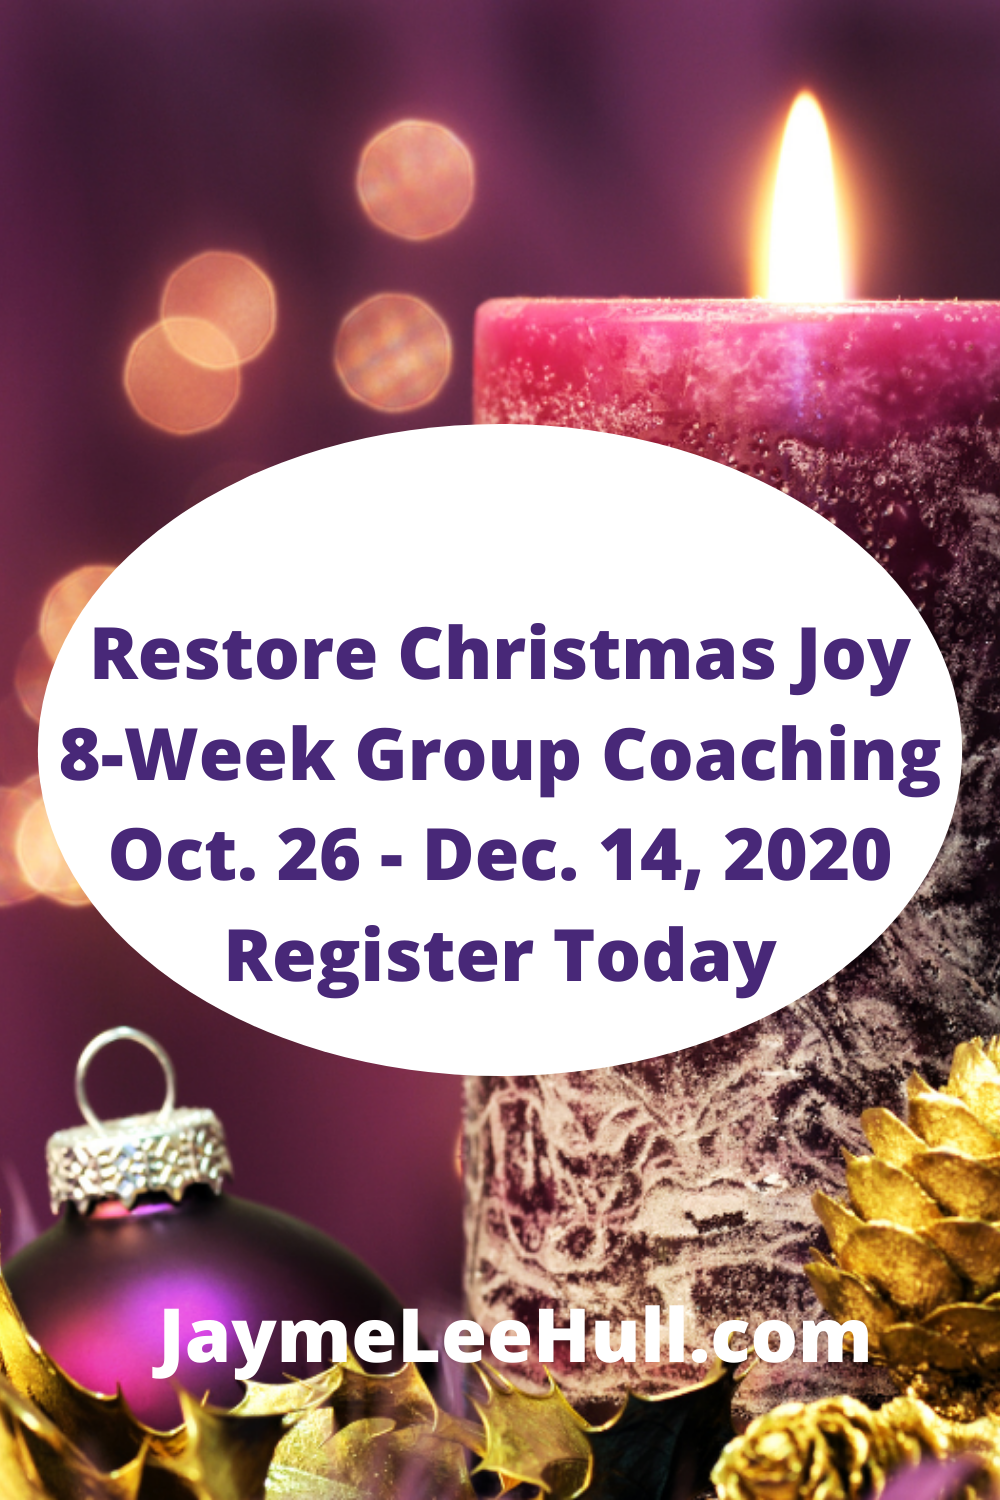 Holiday Group Coaching PinIt, How do I start a group coaching program? What are the benefits of group coaching? coach groups, life coach, group coaching benefits, group coaching activities, group coaching vs individual coaching, group coaching topics, group coaching online, group coaching program, #JaymeLeeHull